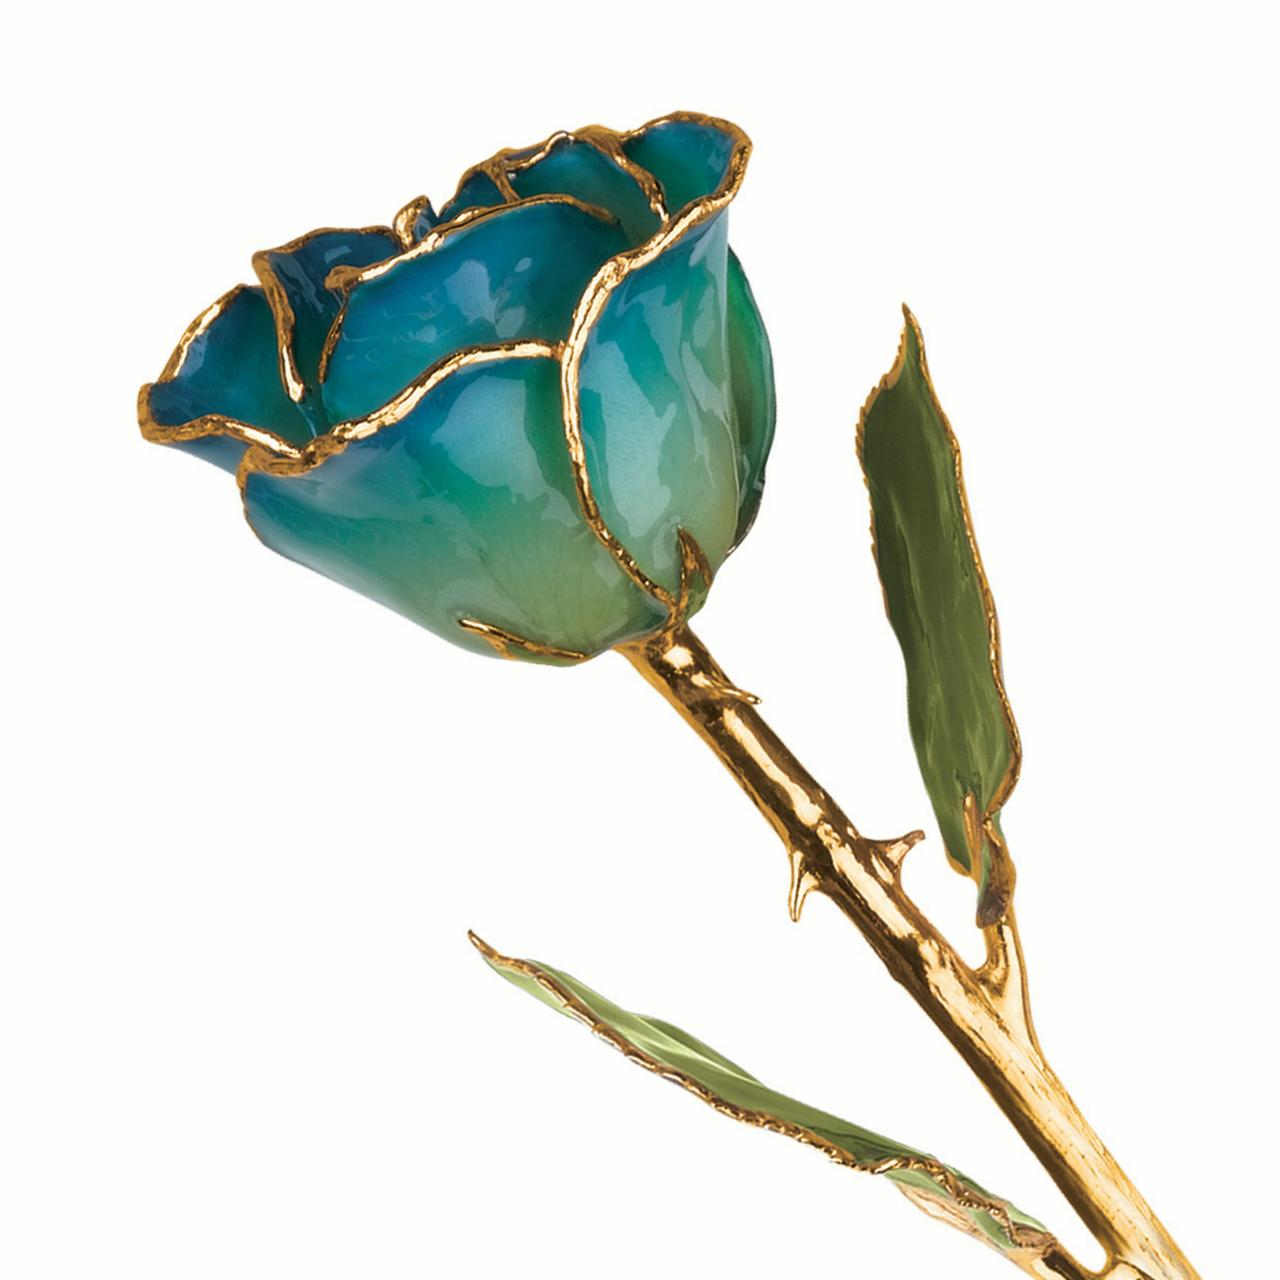 Lacquer Dipped Gold Trim Green Peridot Navy Pearl Rose Figurine Orchid Leaf K Trimmed Keepsake Floral Home Decor Flower For Women